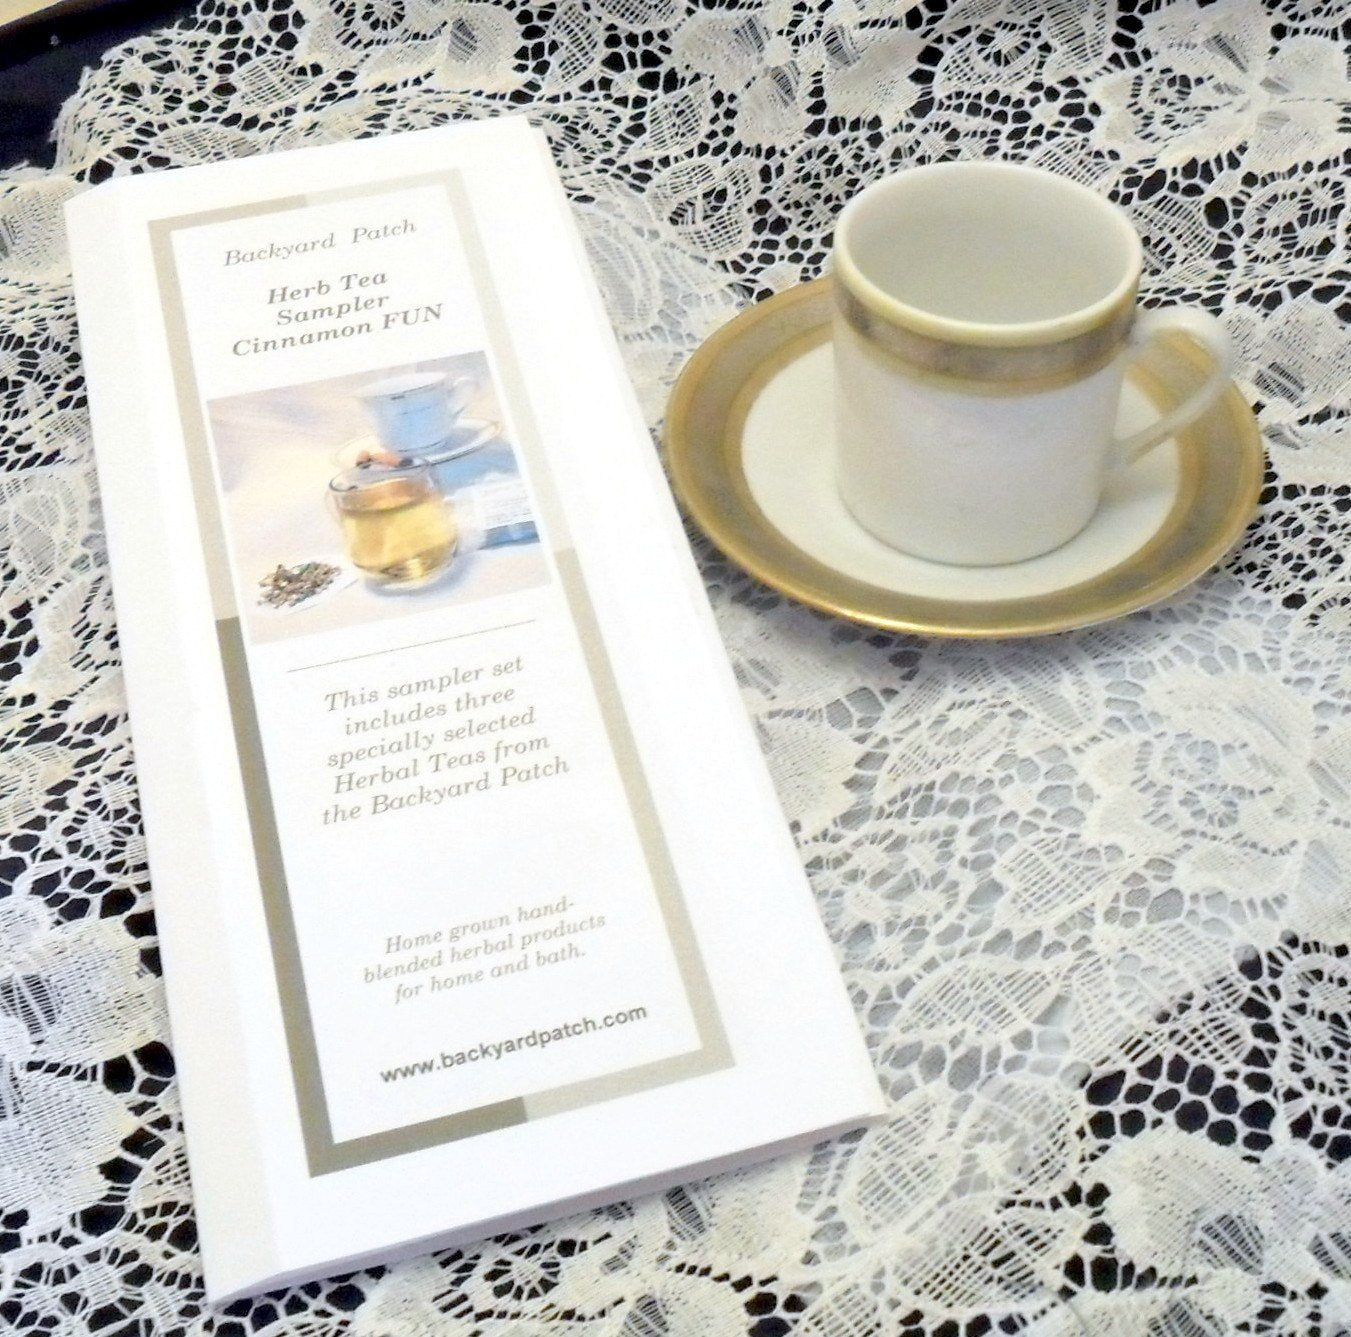 Sampler of Tea Samplers - Hostess Special - each a set of 3 herb teas, cinnamon, chamomile, mint, lavender